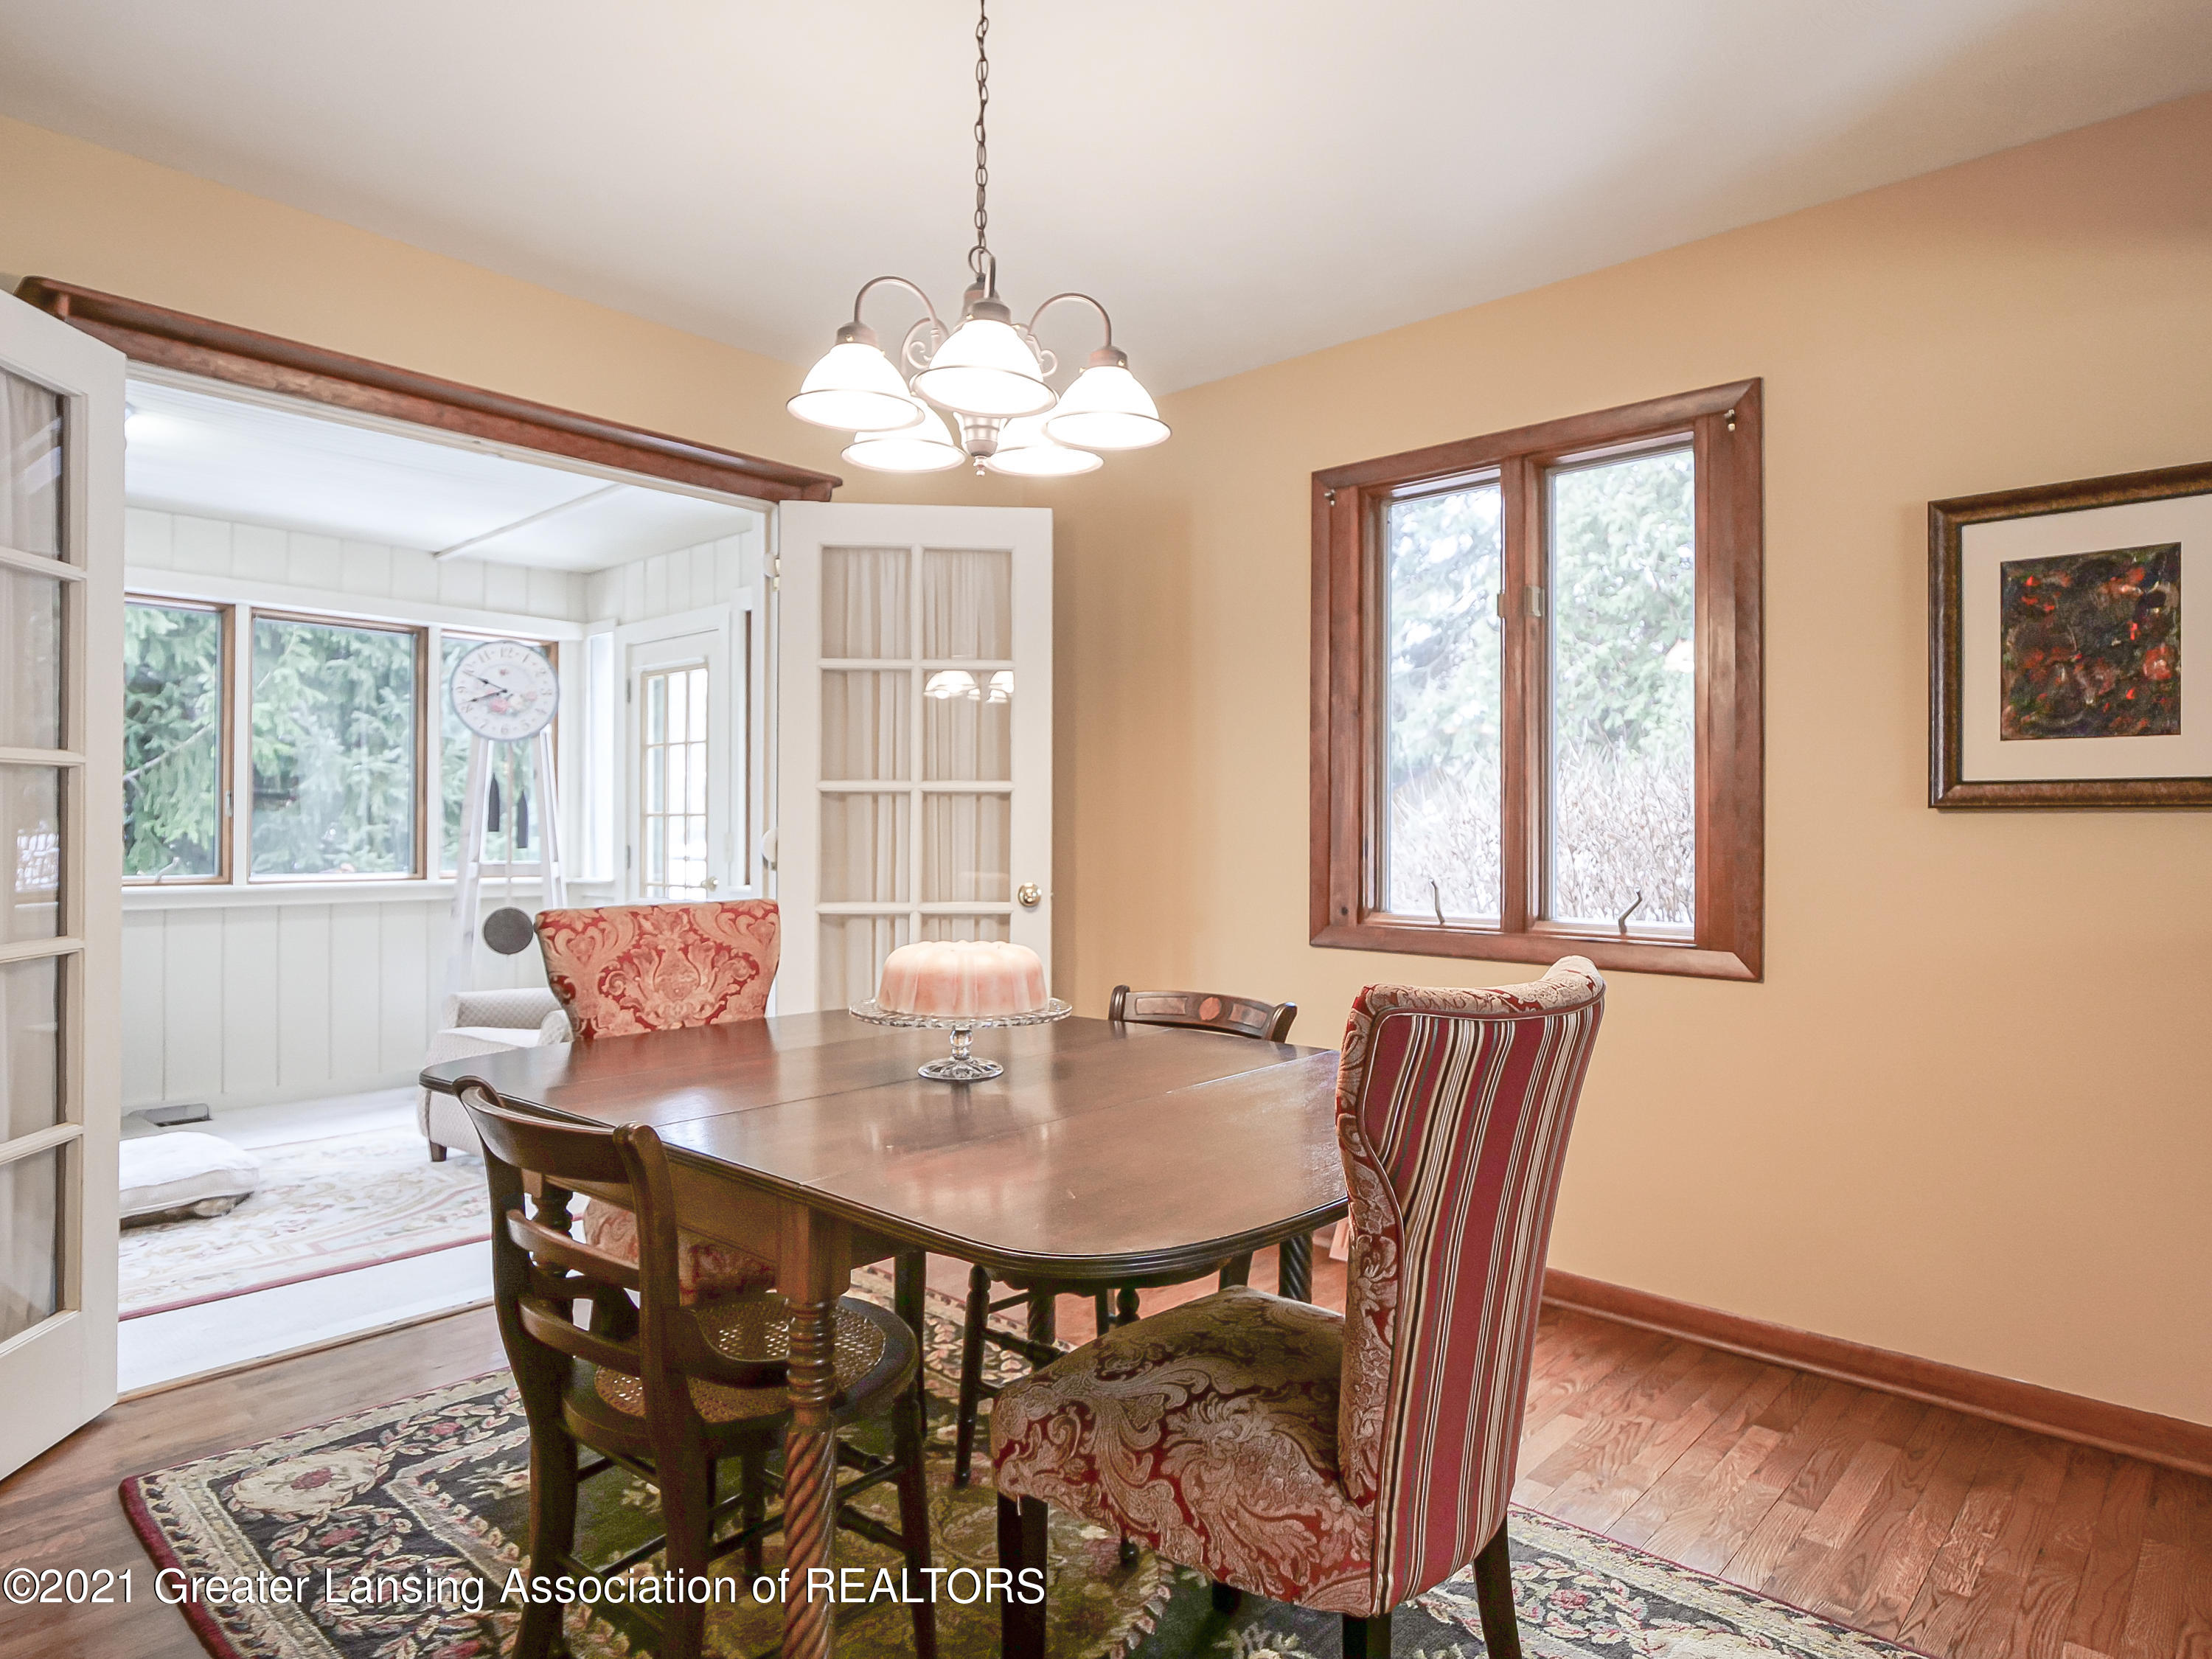 12980 Kingsgate Way - 12980_Kinsgate_Way-13 - 5